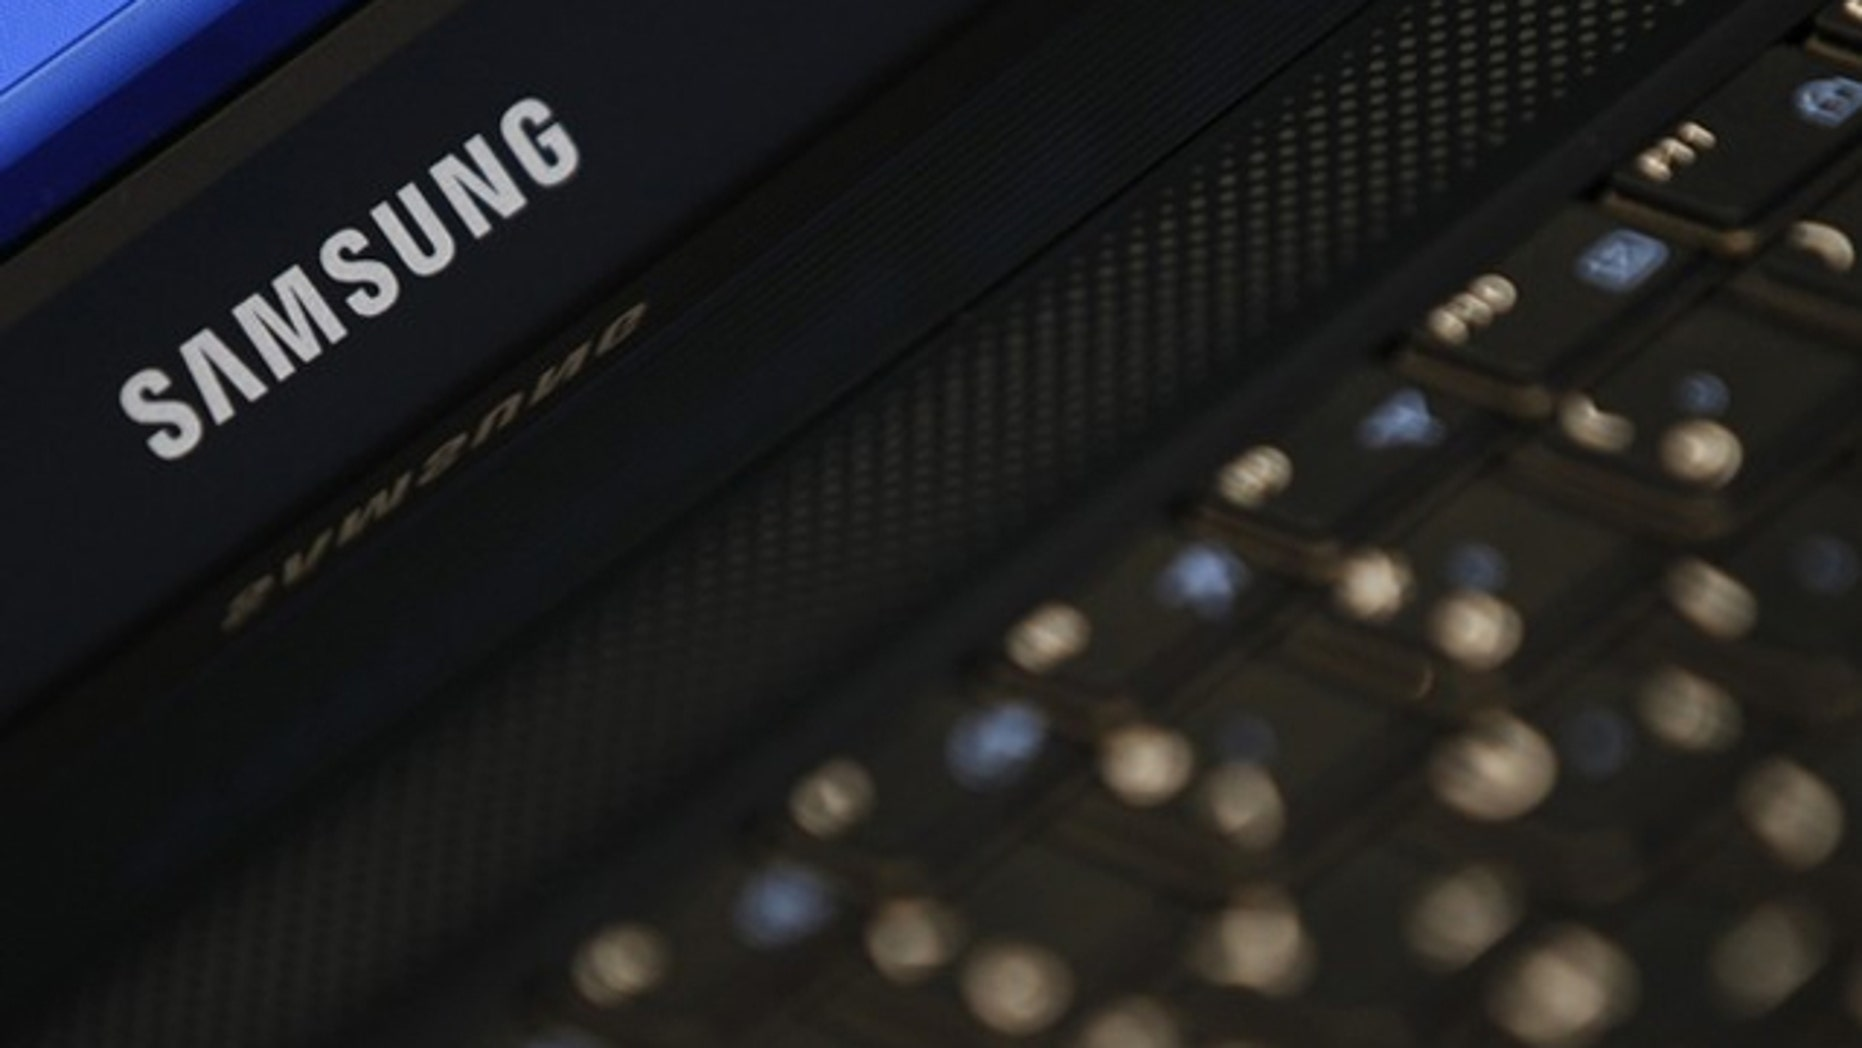 A security consultant sent shockwaves through the computer industry with claims that he had uncovered spyware on Samsung laptops -- claims that have been soundly discredited.